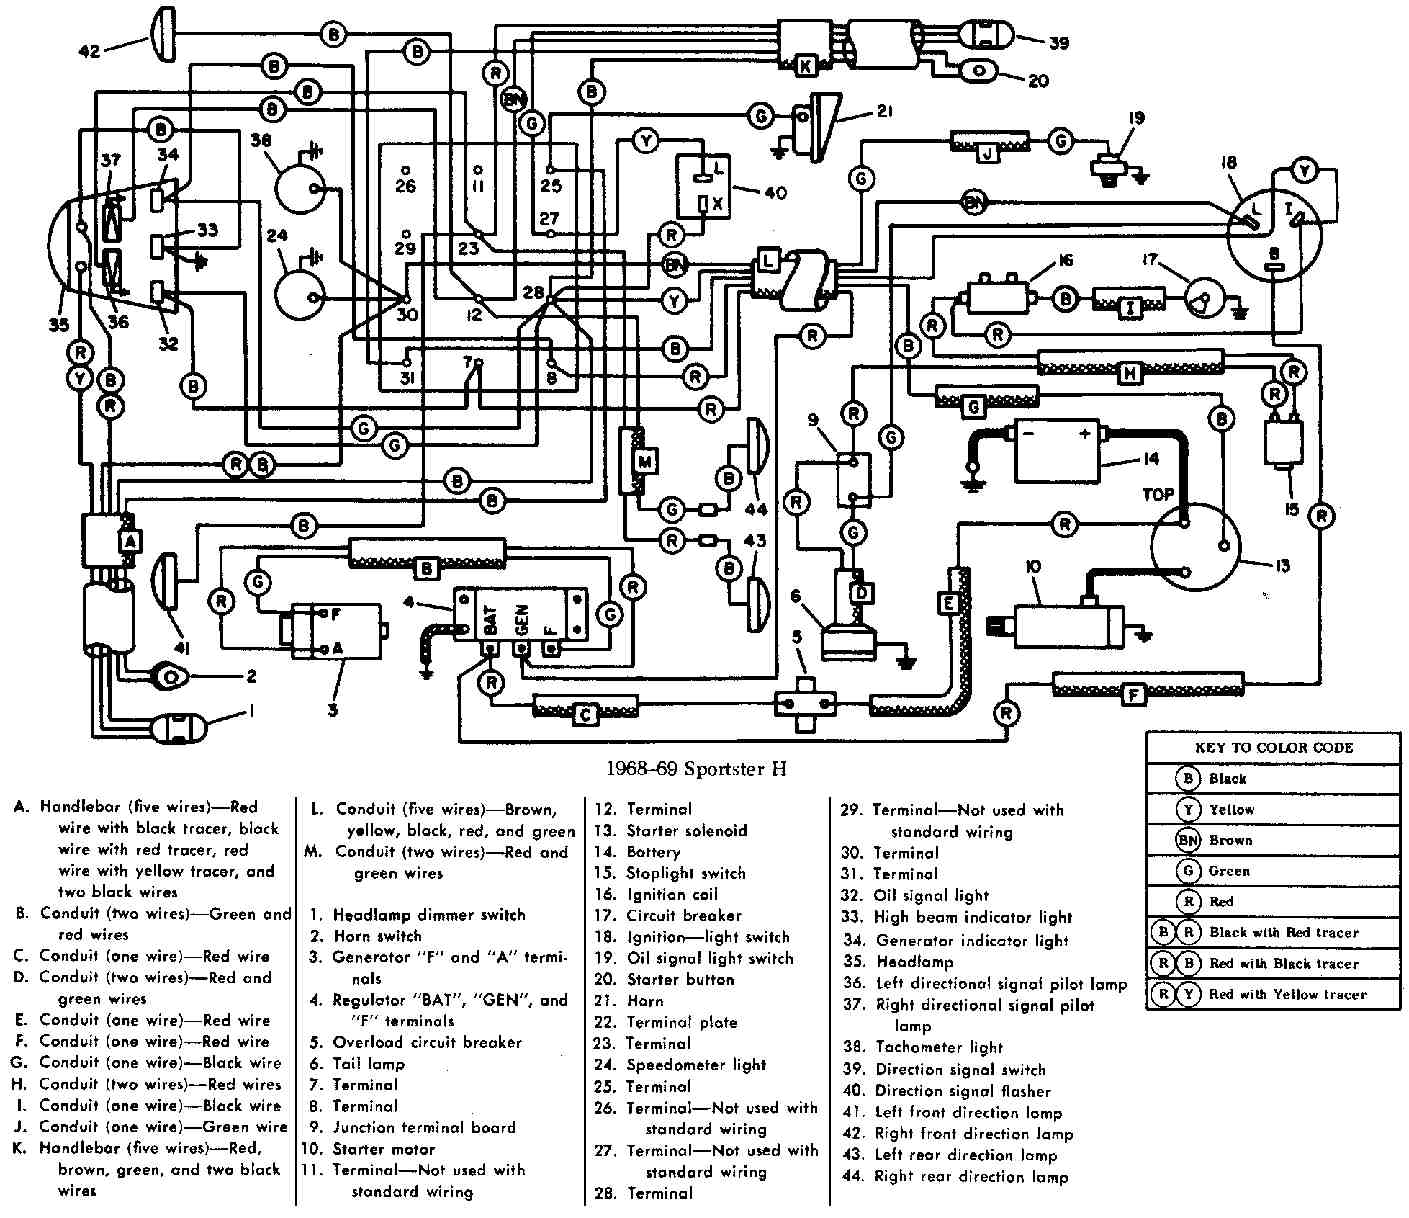 Harley Davidson  Motorcycle Manuals PDF, Wiring Diagrams